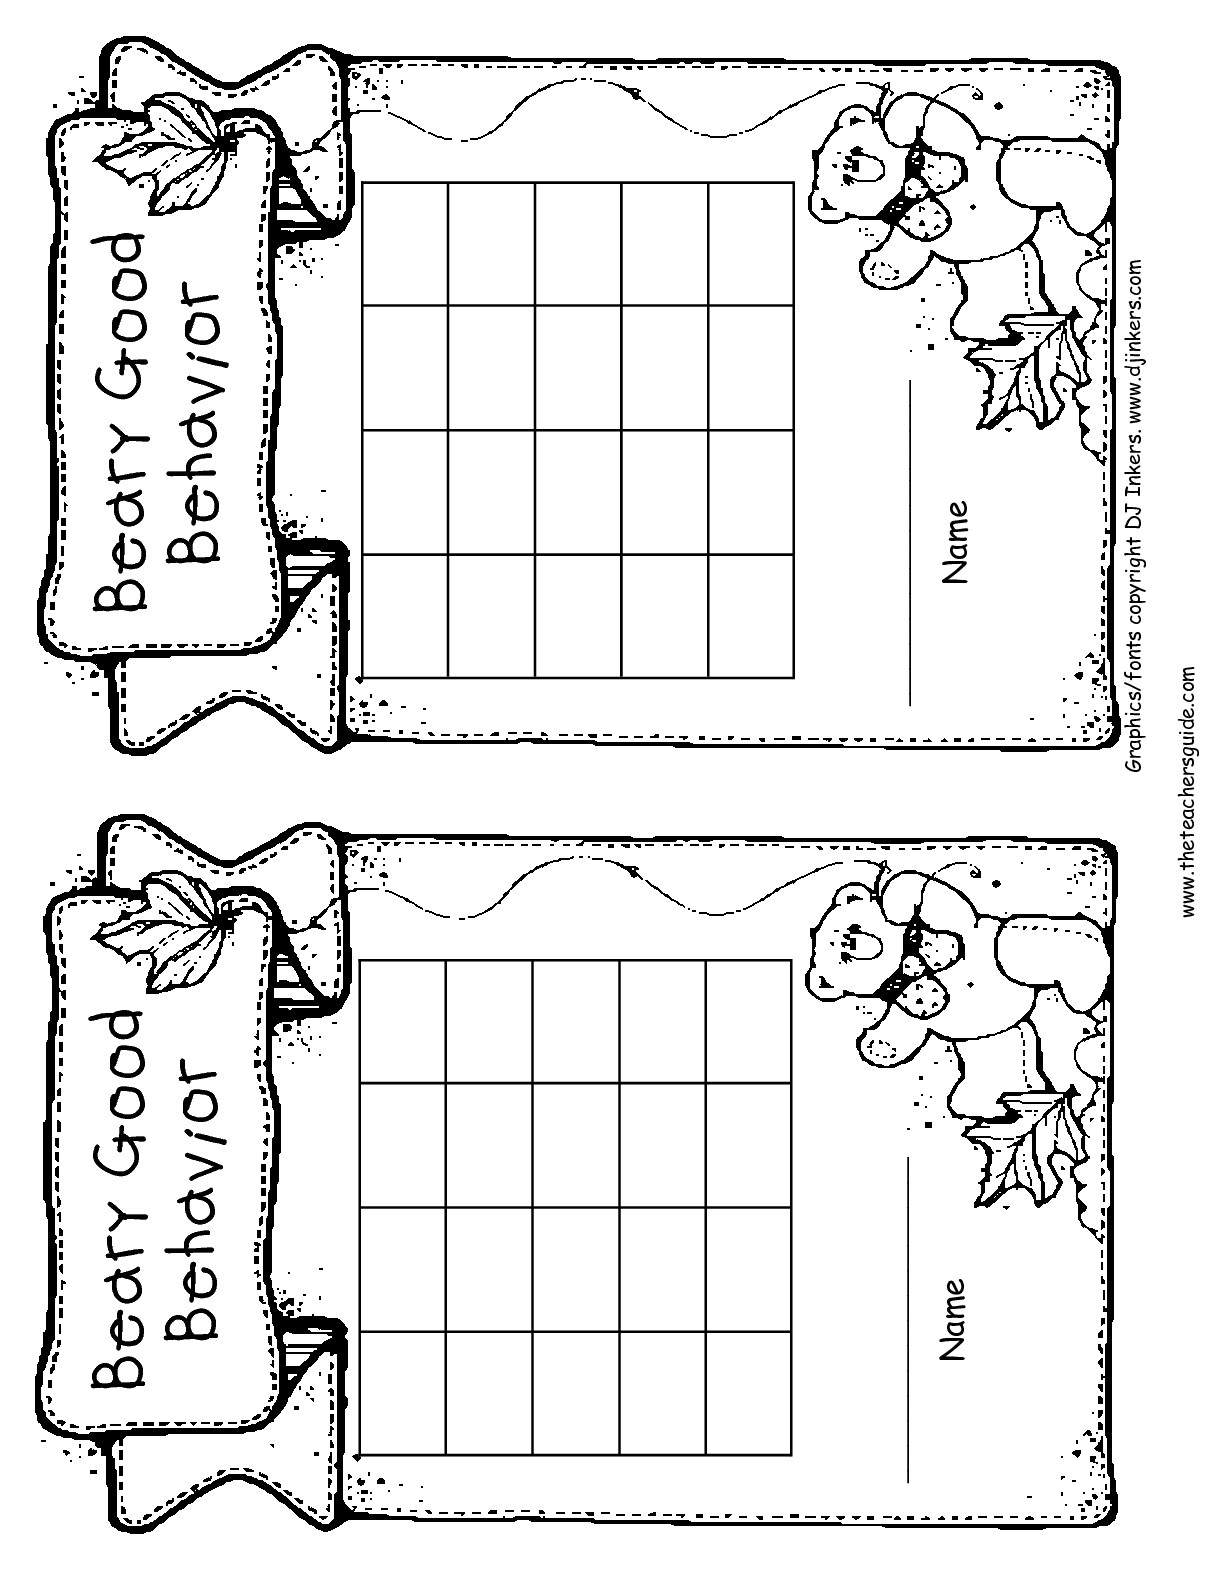 Free Printable Reward And Incentive Charts - Free Printable Behavior Charts For Elementary Students